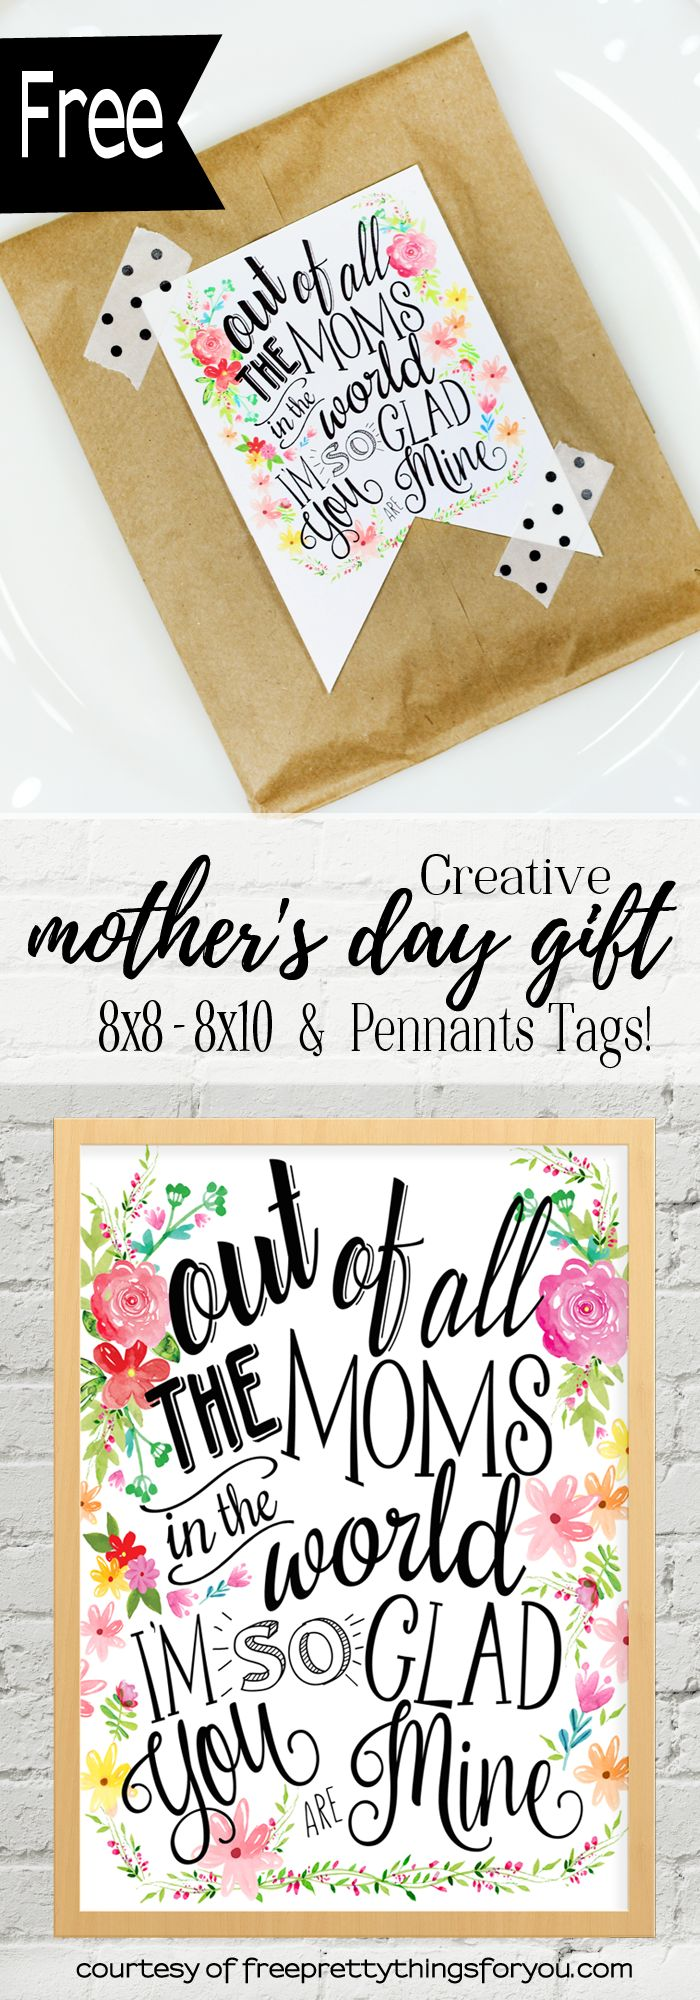 397 best images about mother 39 s day ideas on pinterest mothers mothers day video and father 39 s day. Black Bedroom Furniture Sets. Home Design Ideas